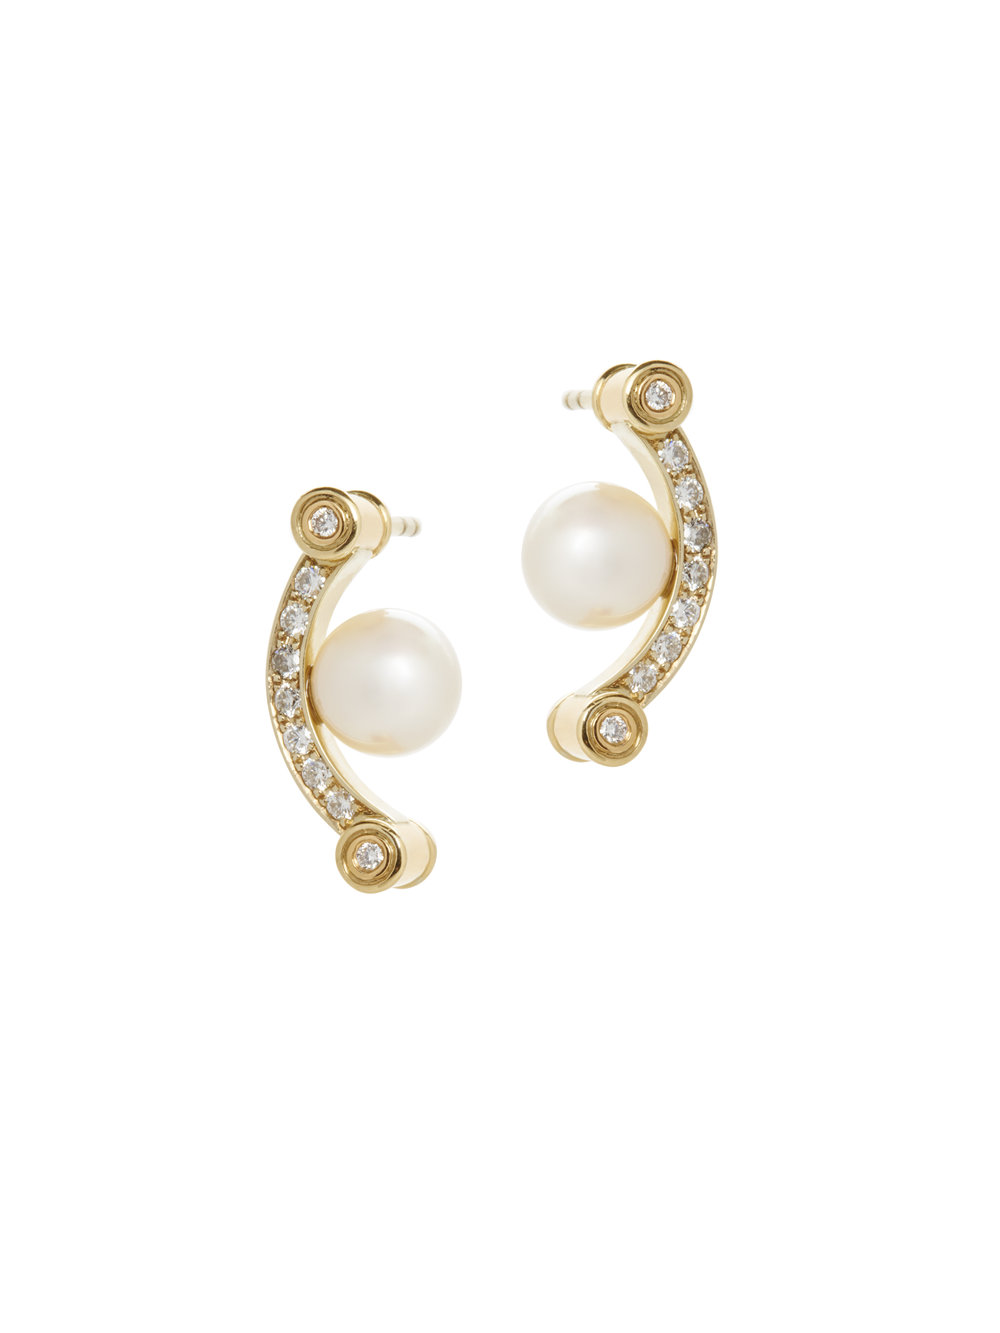 SANDY EARRINGS   18K GOLD SOUTH SEA PEARLS 0.48 CT OF DIAMONDS      Contact for inquiry